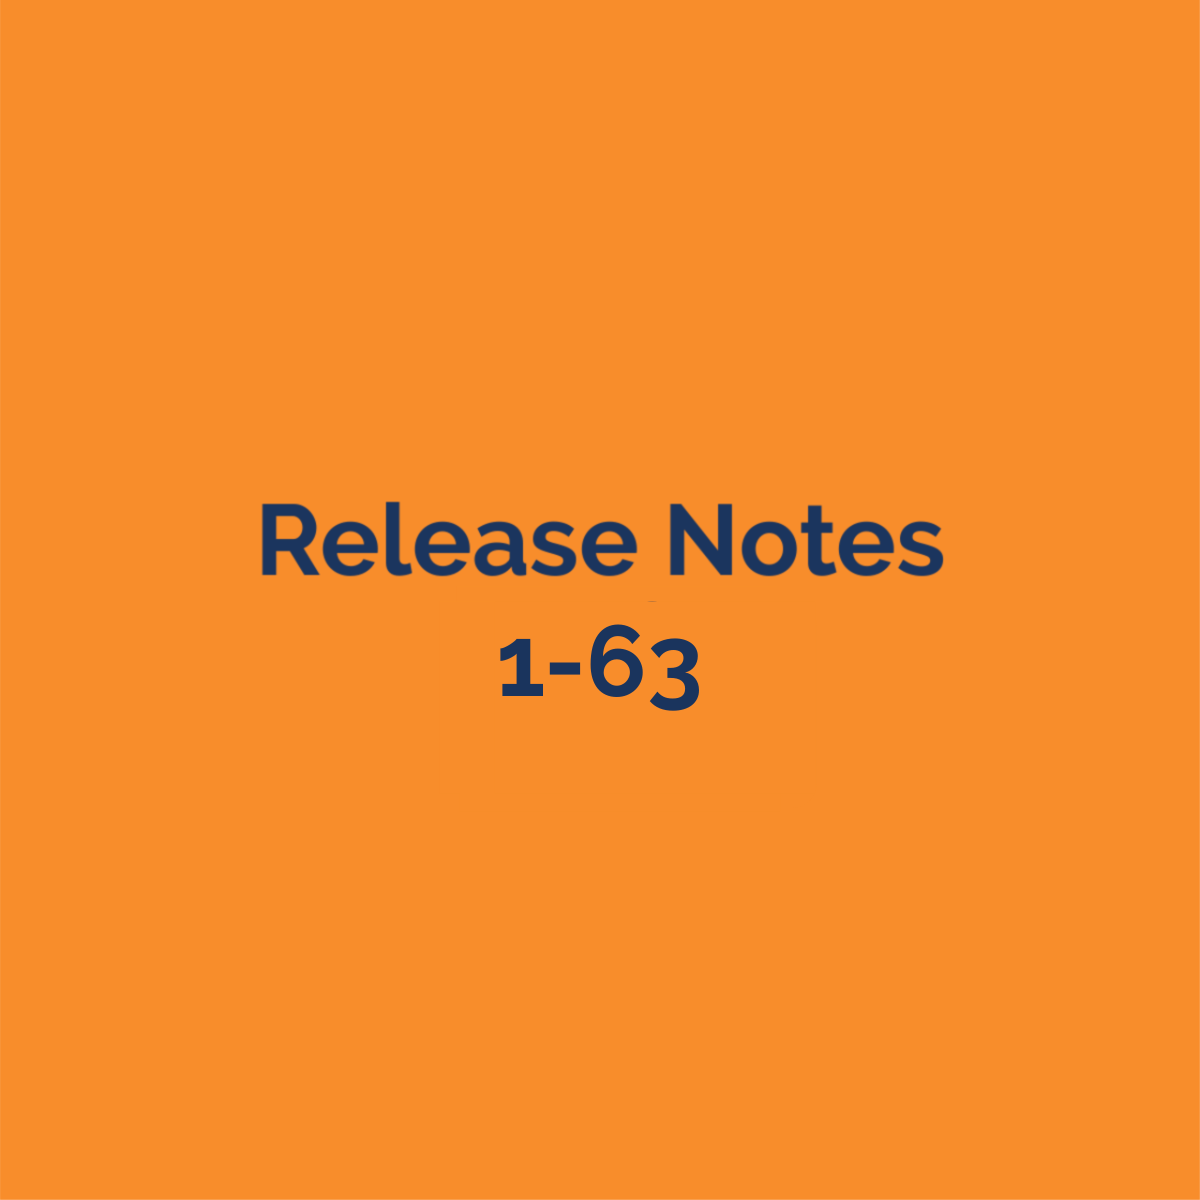 release notes 1-63